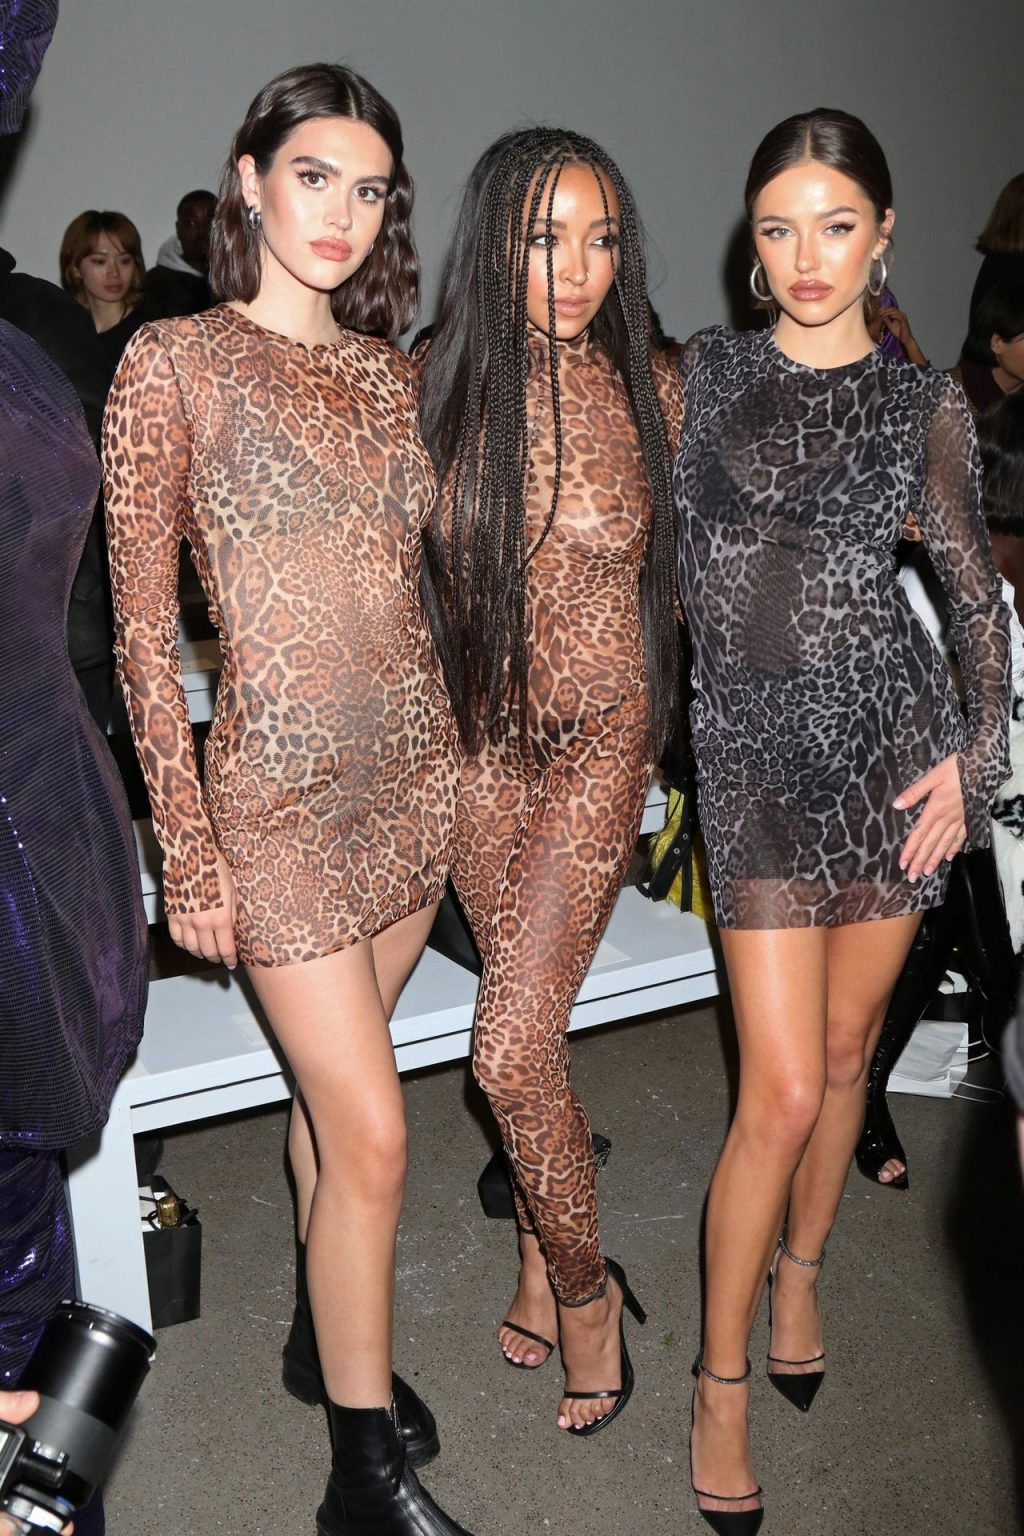 Tinashe See Through The Fappening Blog 6 1024x1536 - Tinashe Shows Off Her Tits at the NYFW 2020: LaQuan Smith Fashion Show (13 Photos)